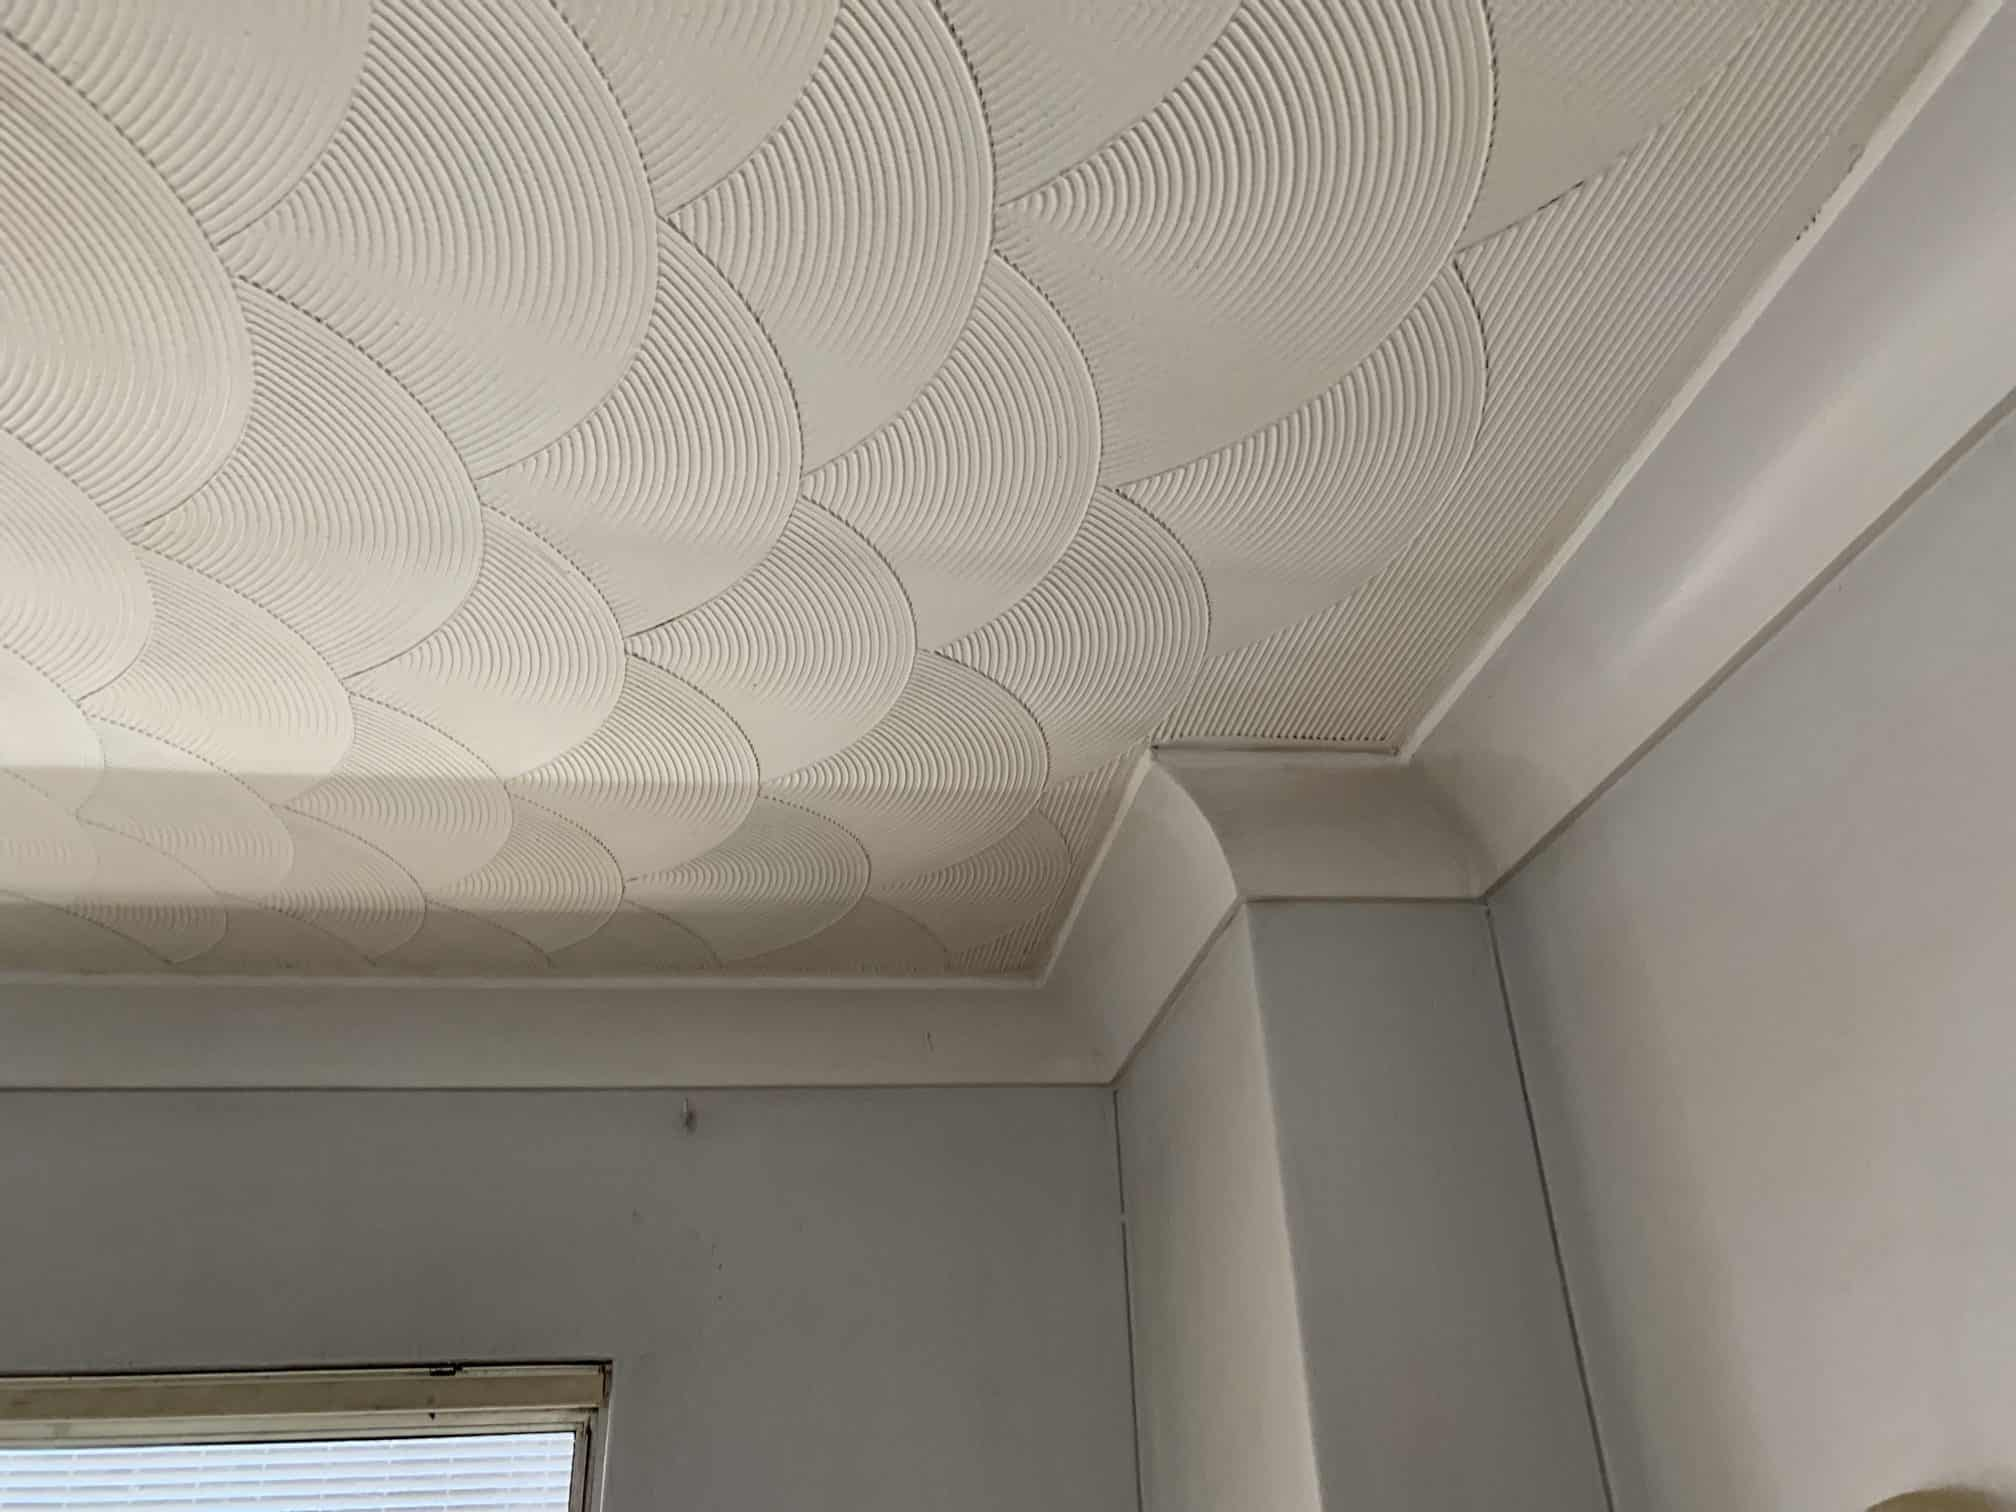 clean white ceiling in room